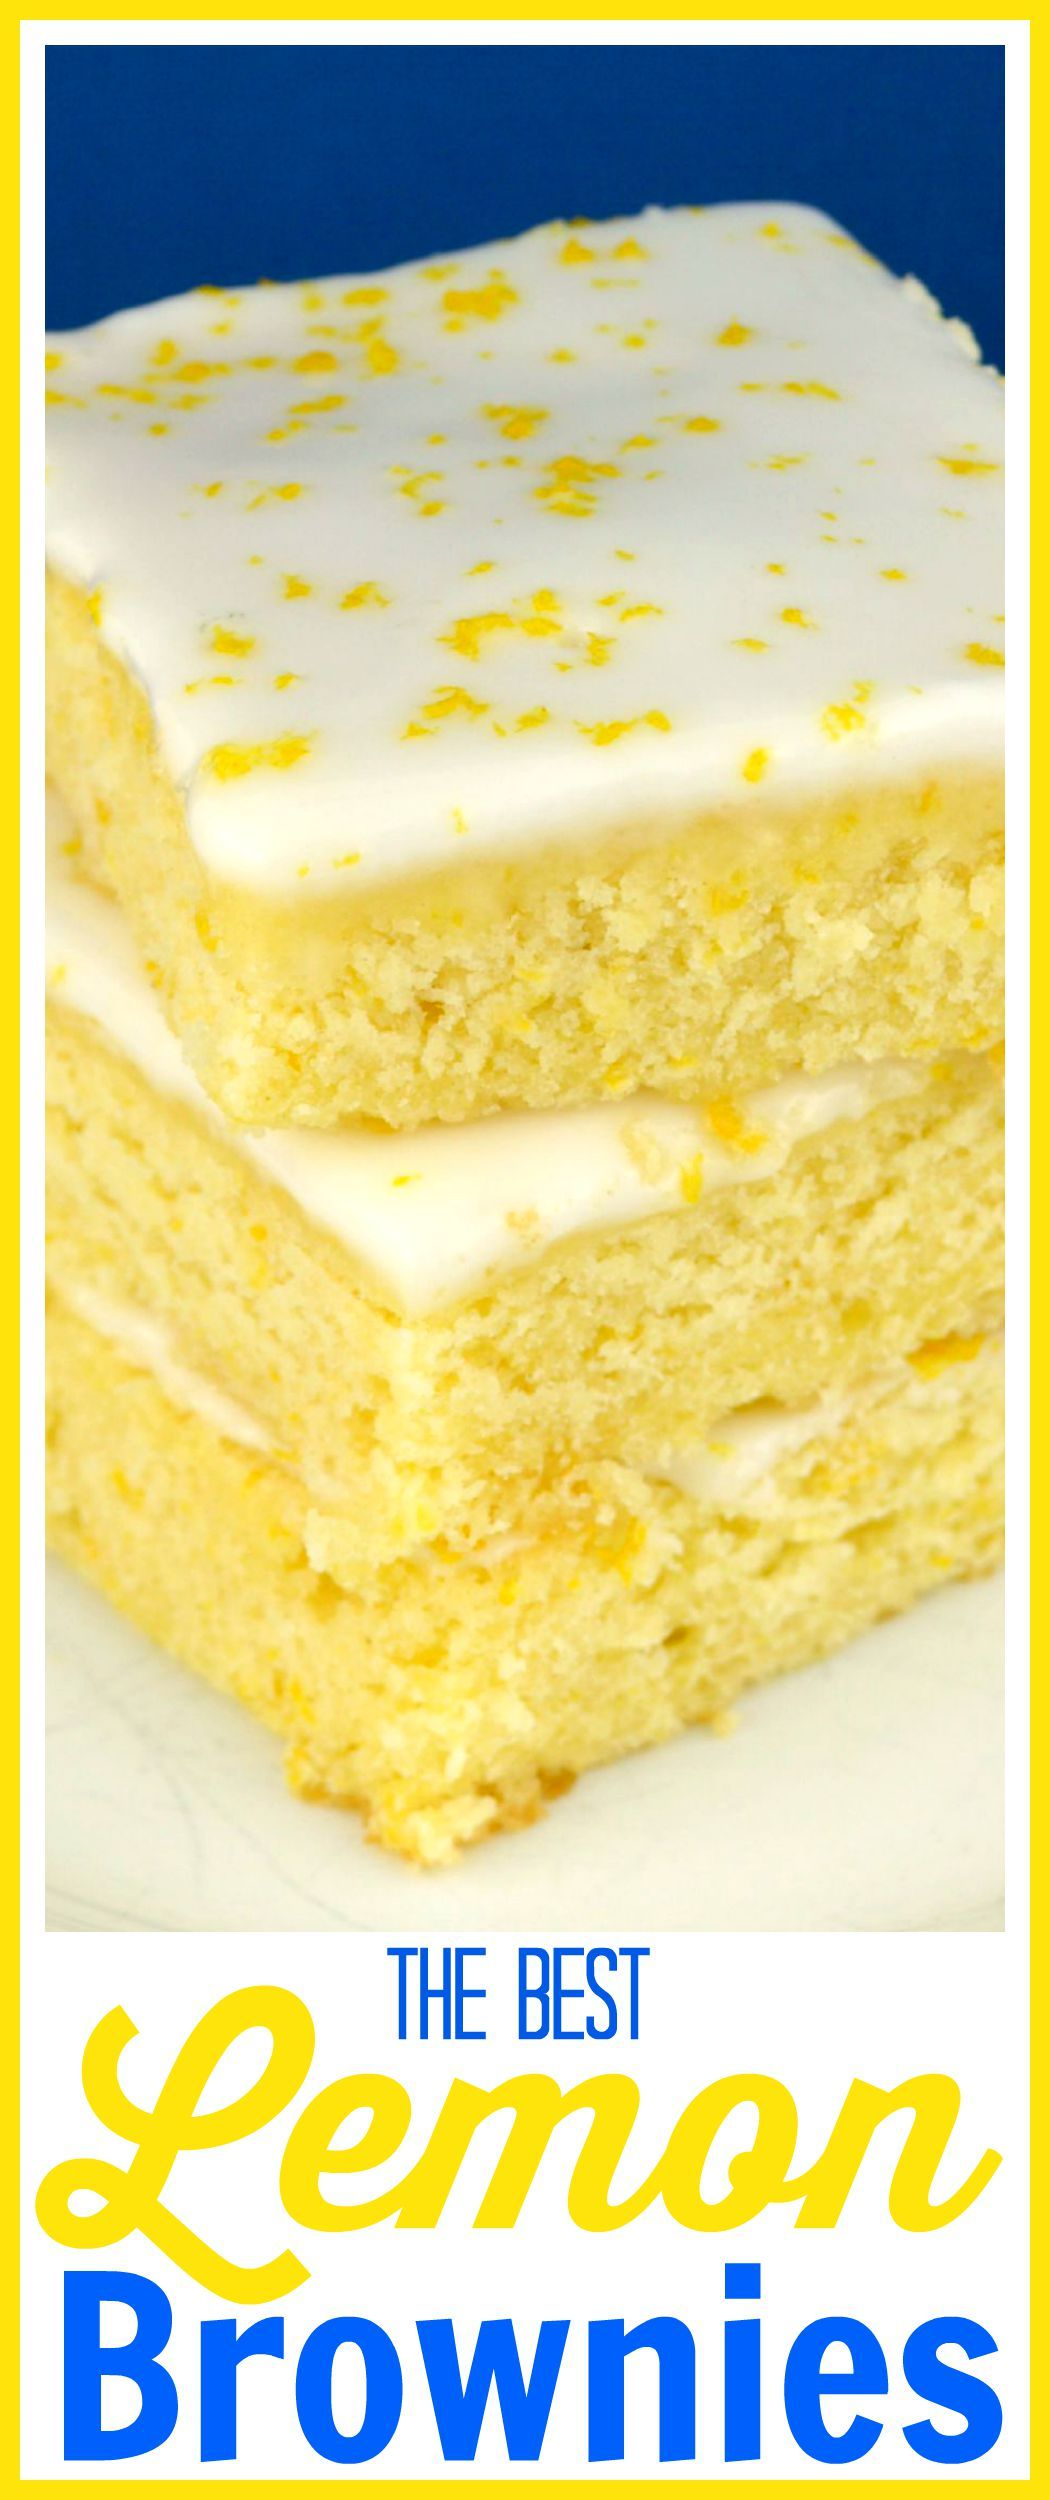 These are the best Lemon Brownies I've ever had! They're loaded with tons of fresh lemon juice and lemon zest, then topped with the perfect thick, lemon glaze.They're fudgy bites of lemon deliciousness! I've tried other recipes and have to say this one totally rocks!